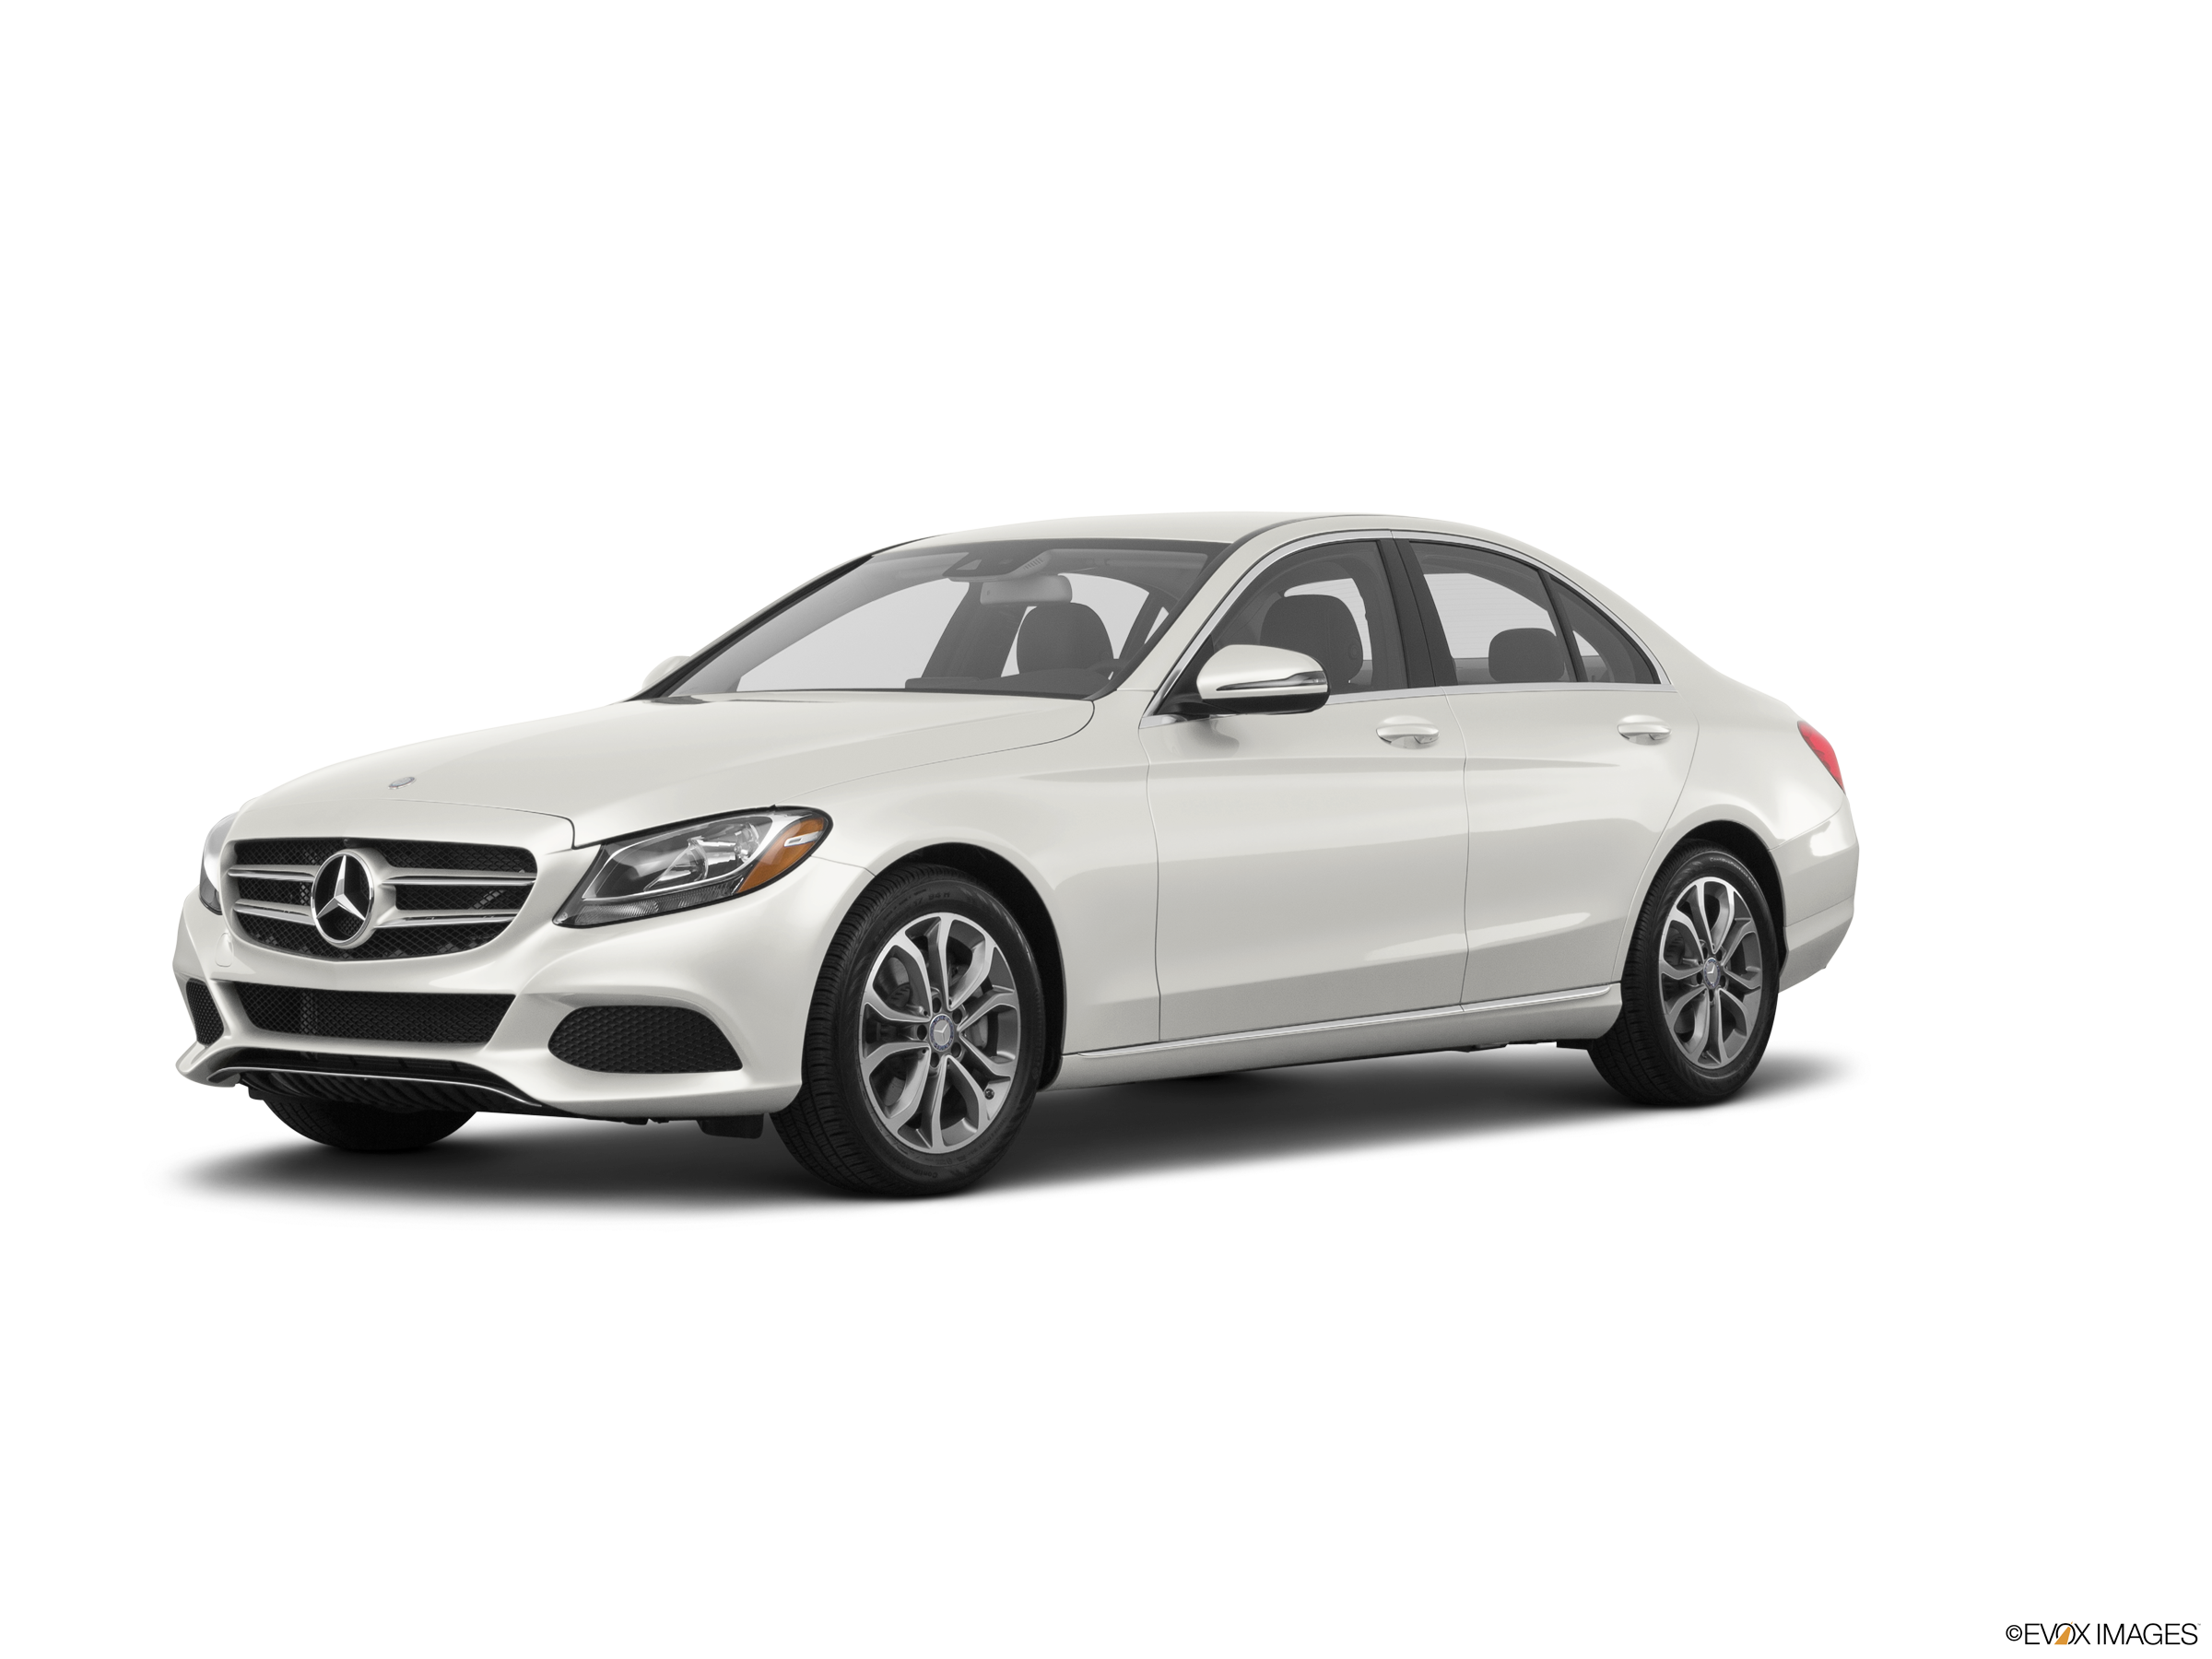 Best Safety Rated Luxury Vehicles of 2018 - 2018 Mercedes-Benz C-Class